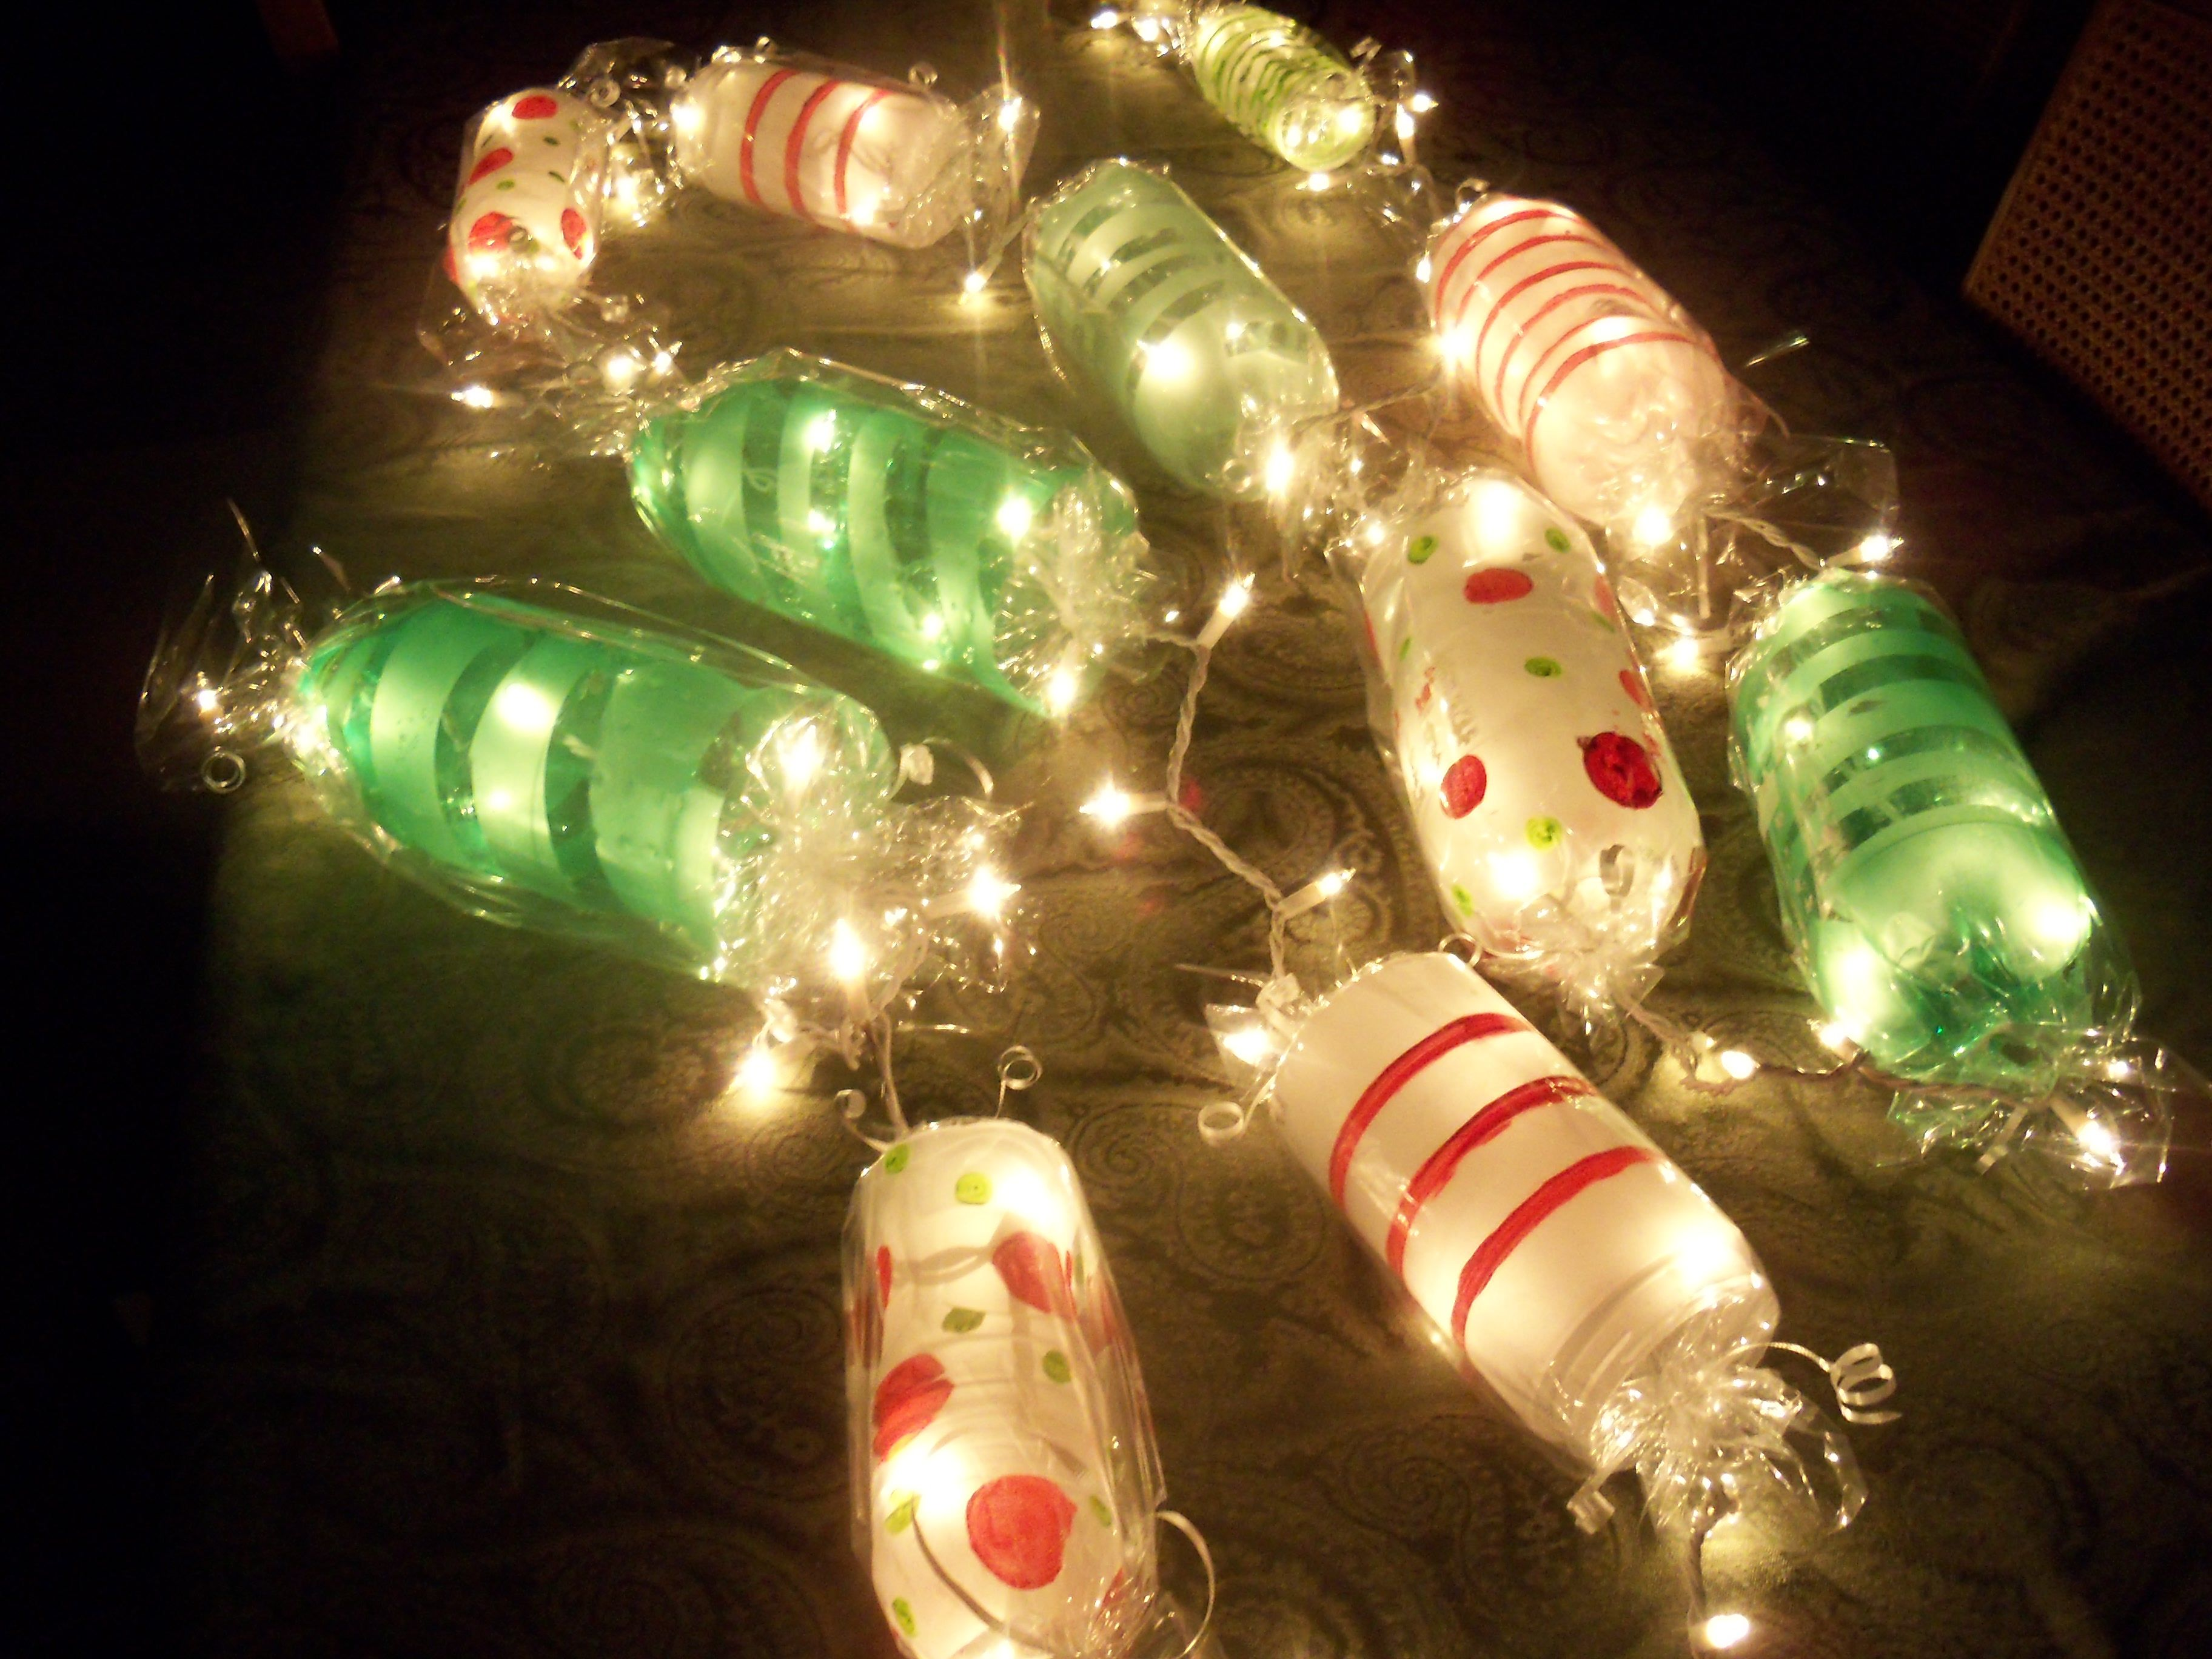 Pin By N Icole Artsy On Life Size Gingerbread House Peppermint Christmas Candy Christmas Decorations Christmas Garland